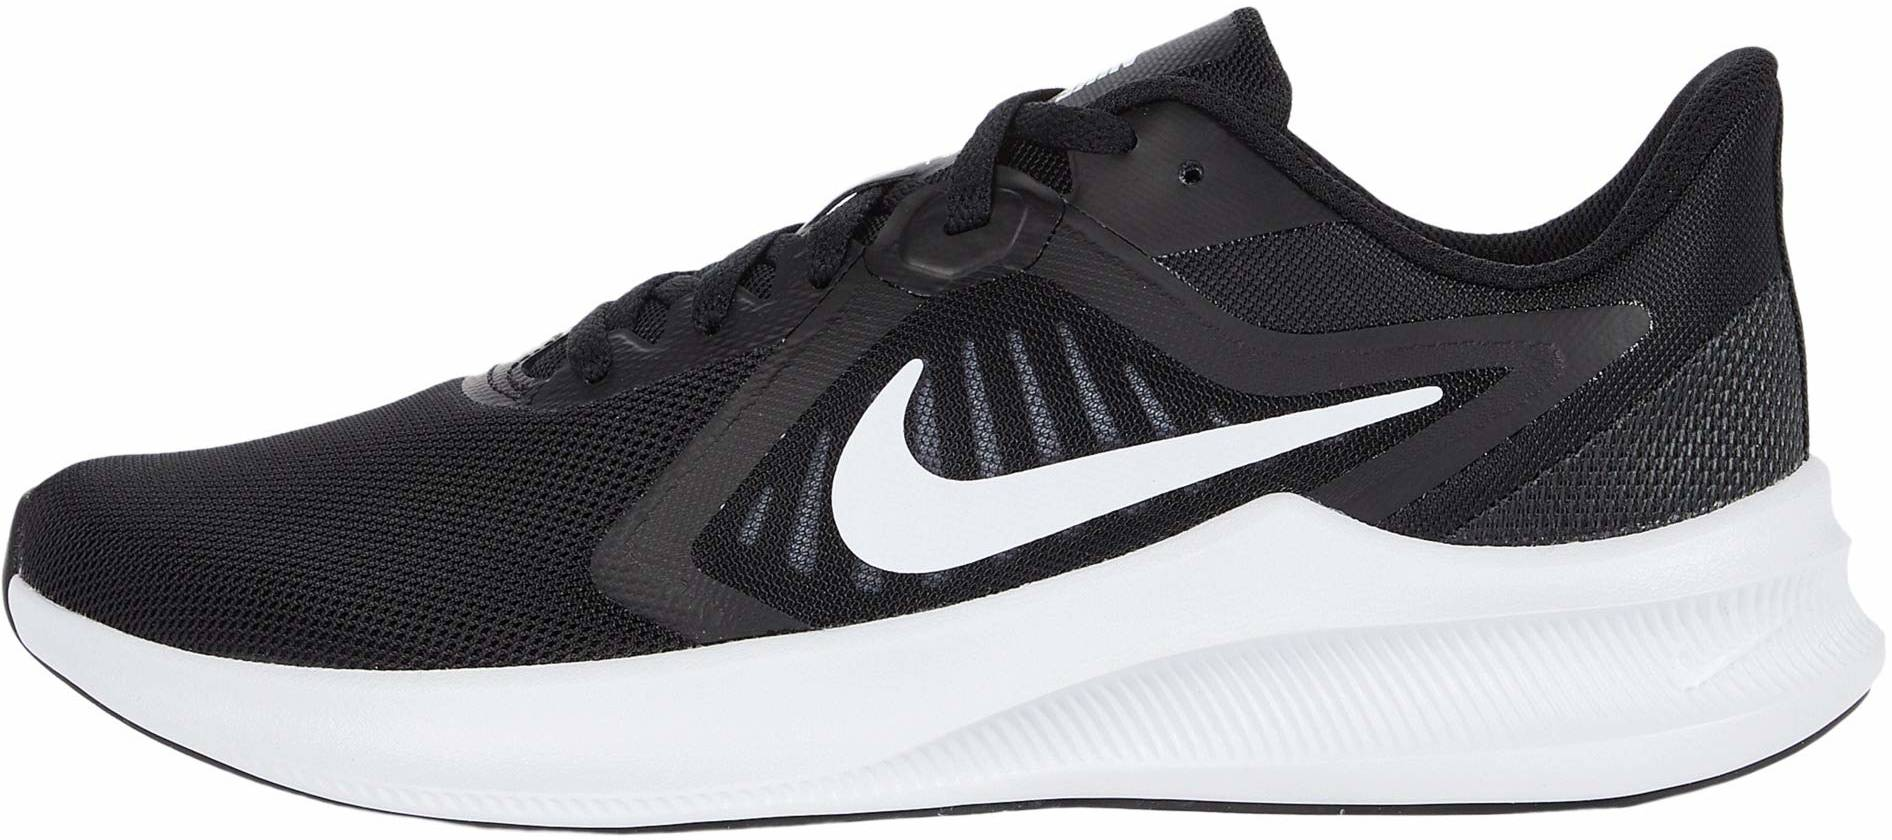 $60 + Review of Nike Downshifter 10